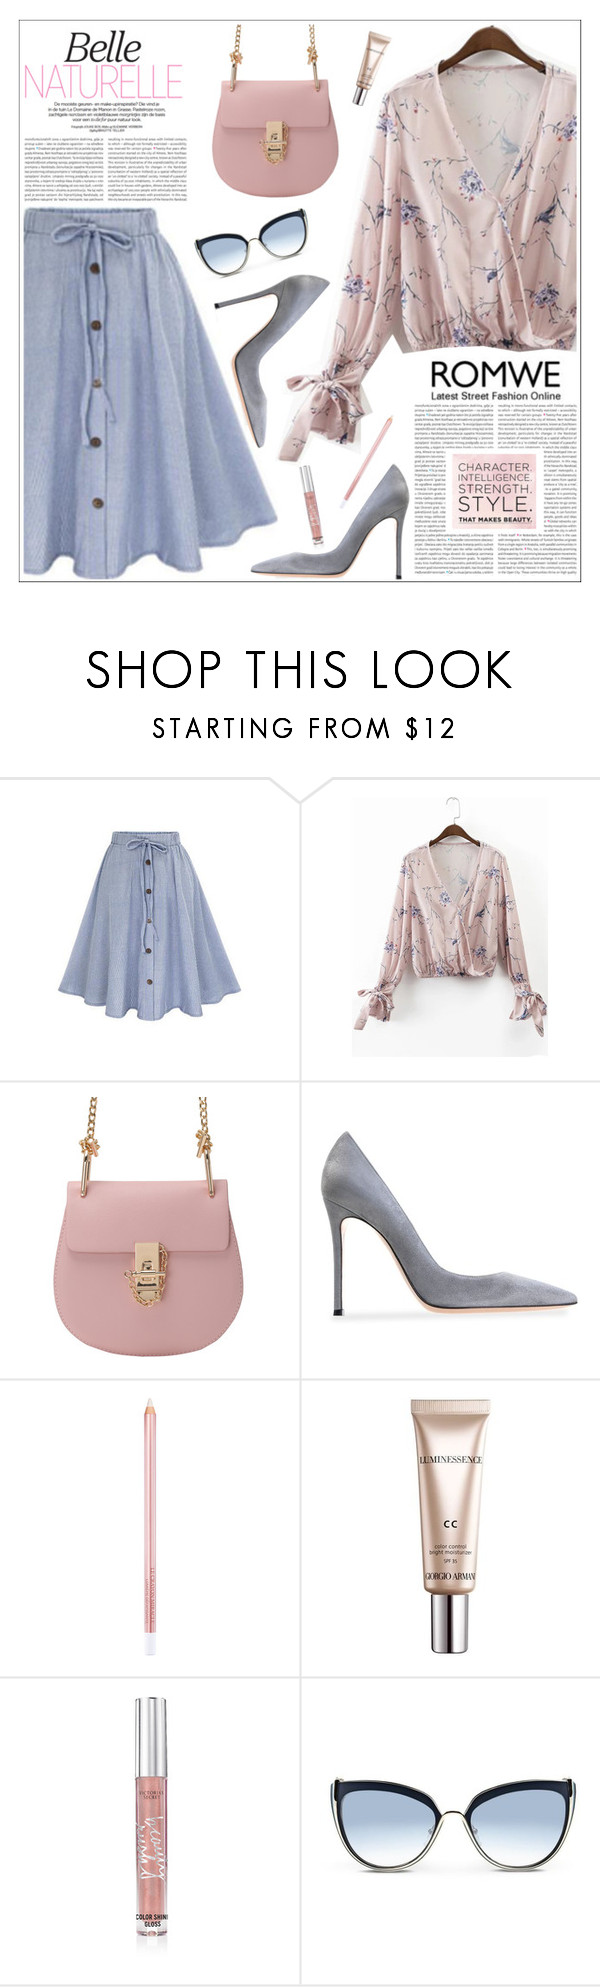 """""""ROMWE: Light Pink Floral Print Wrap Blouse With Bow Tie"""" by tamara-p ❤ liked on Polyvore featuring Gianvito Rossi, Oris, CC, Victoria's Secret and Karl Lagerfeld"""